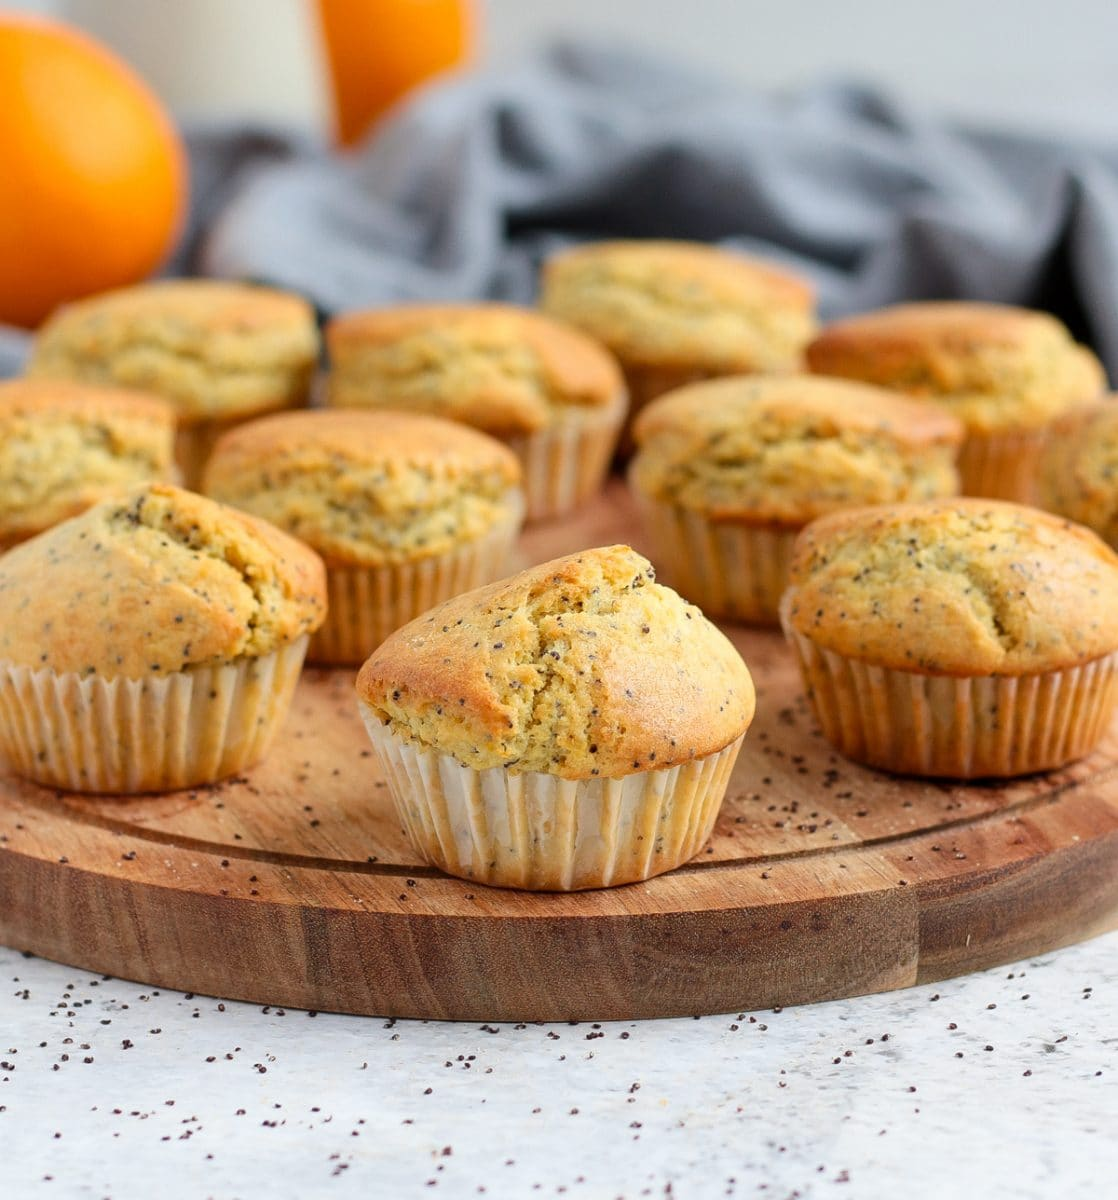 Baked muffins placed over a round wooden board